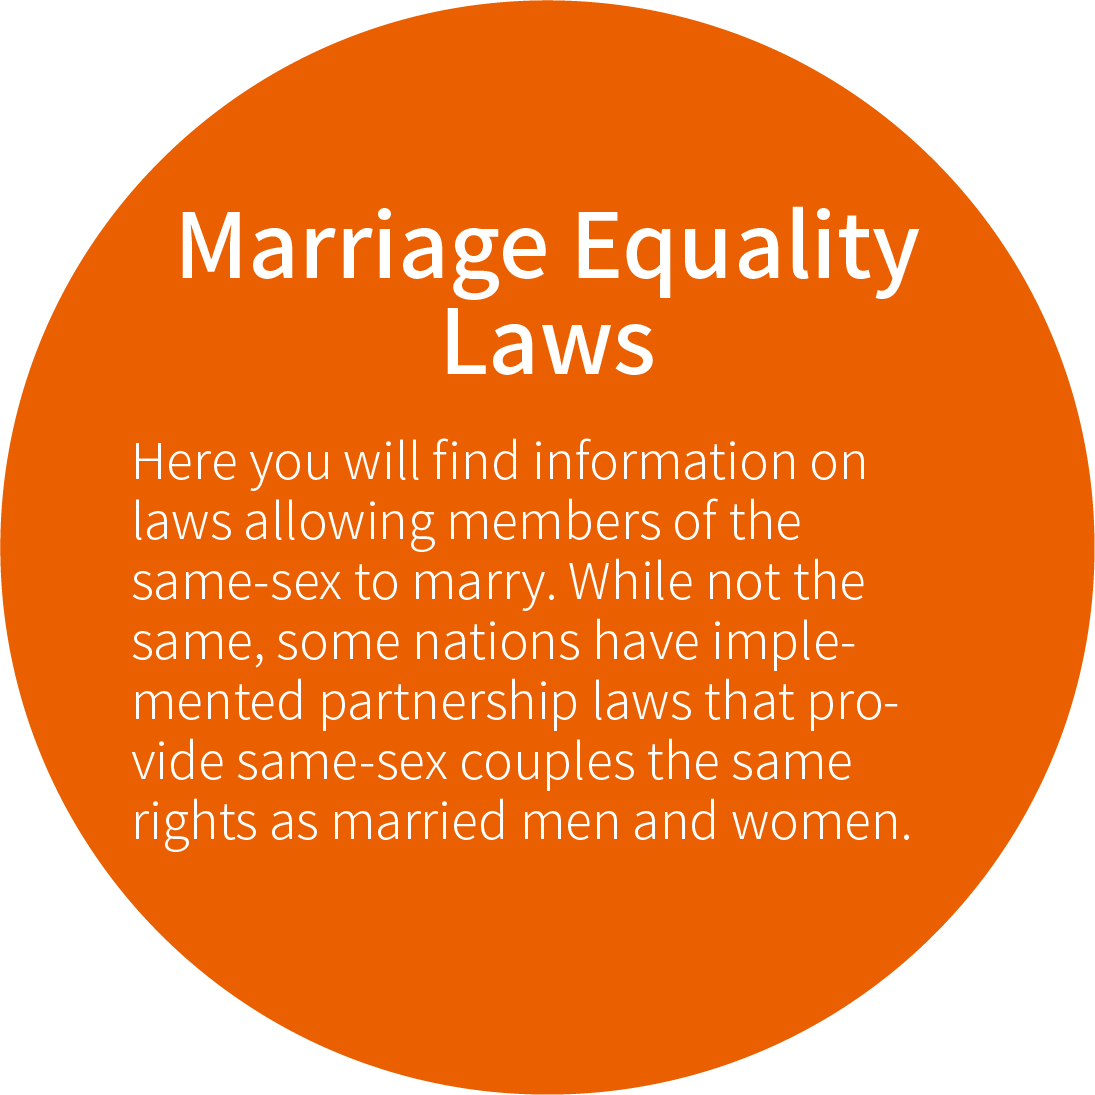 Marriage Equality Laws  Here you will find information on laws allowing members of the same-sex to marry. While not the same, some nations have implemented partnership laws that provide same-sex couples the same rights as married men and women.